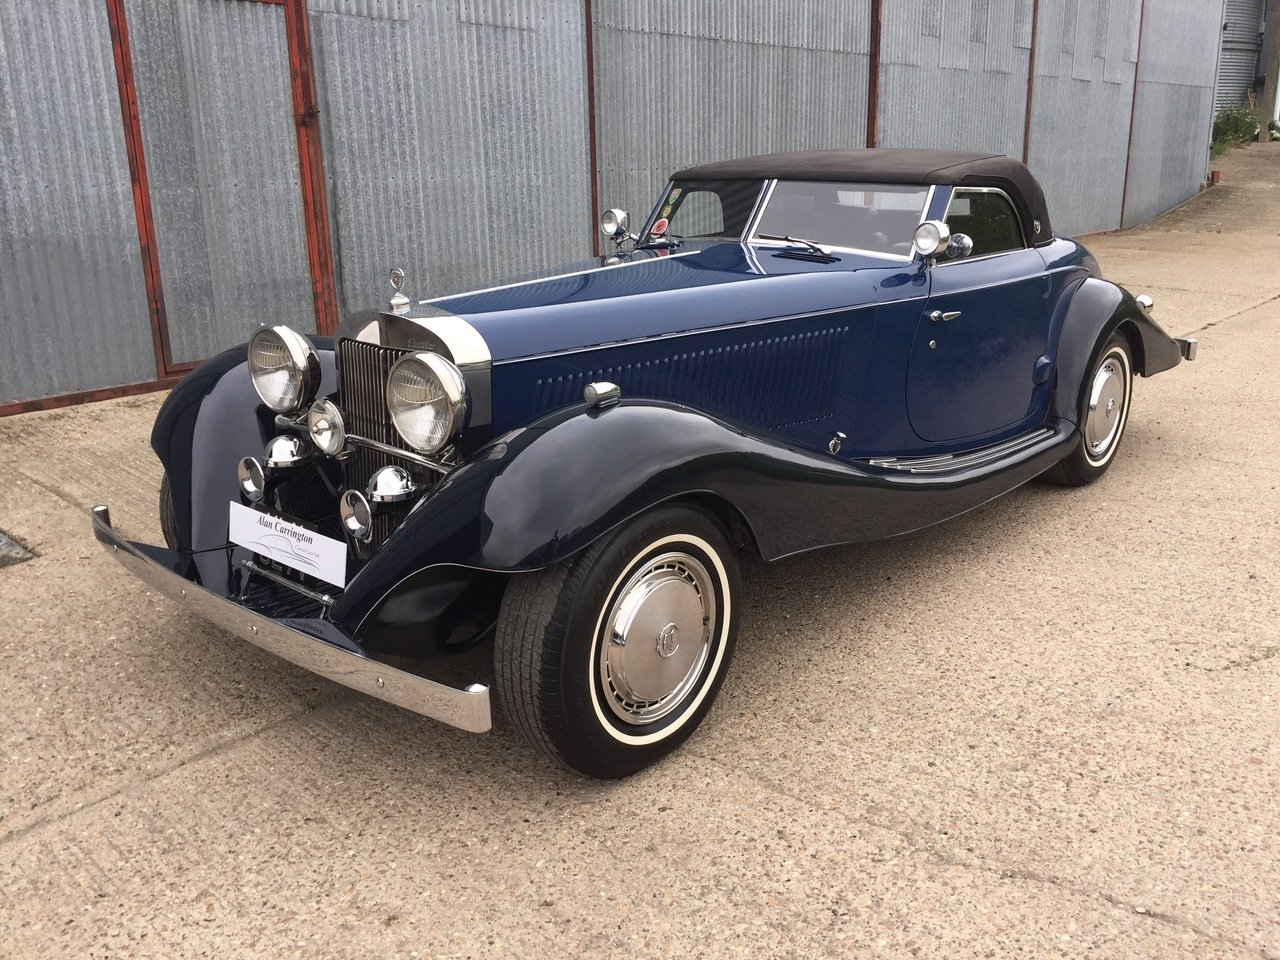 1979 Unique all alloy Cadillac Roadster For Sale (picture 1 of 12)